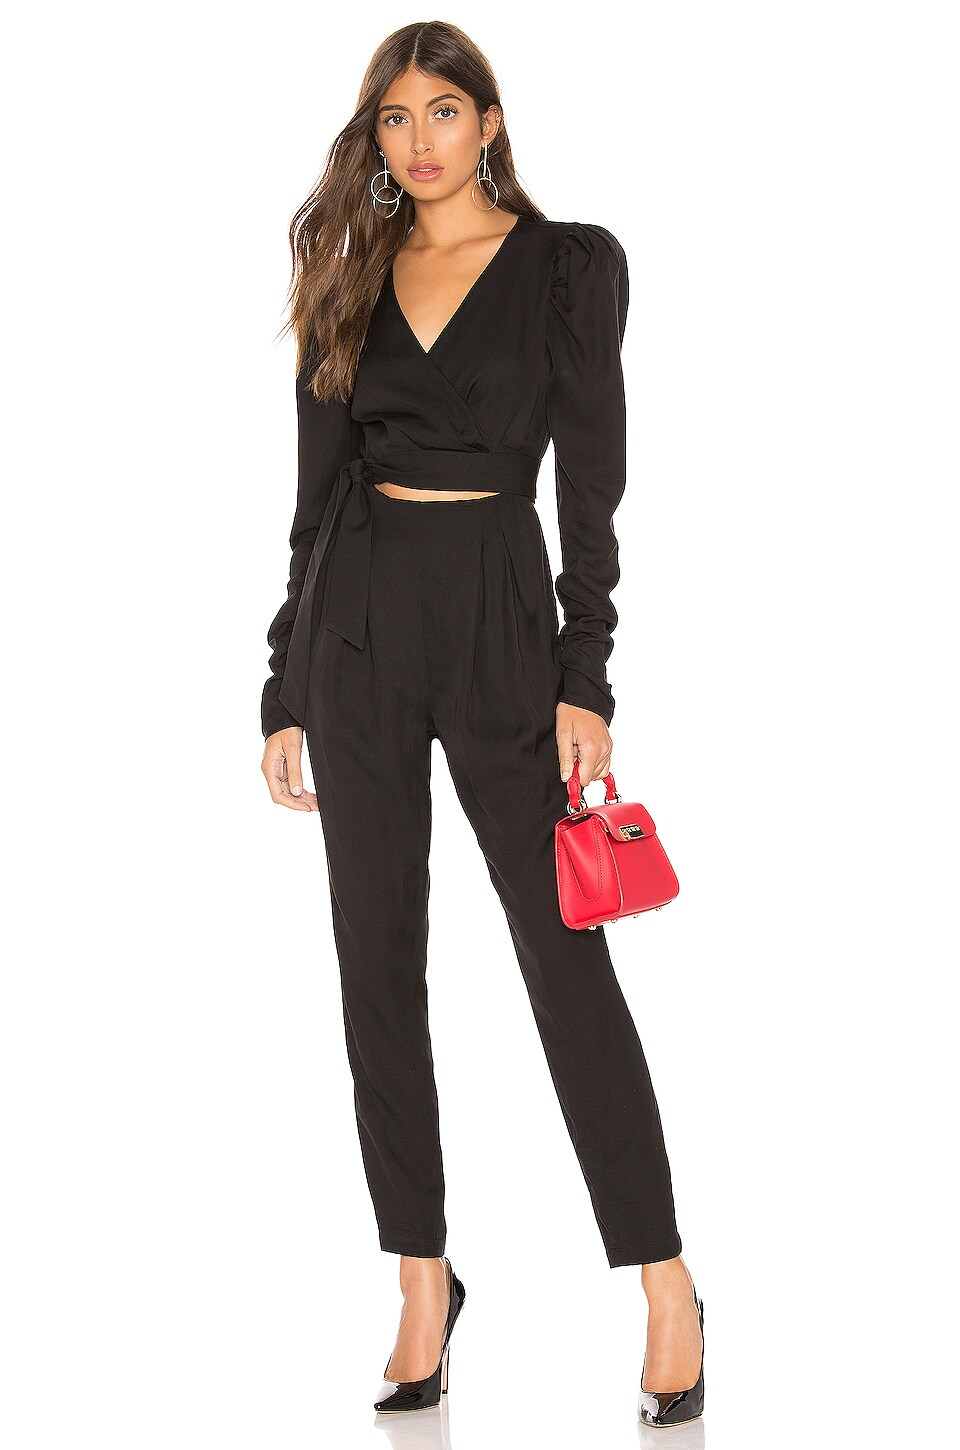 L'Academie The Mary Jumpsuit in Black